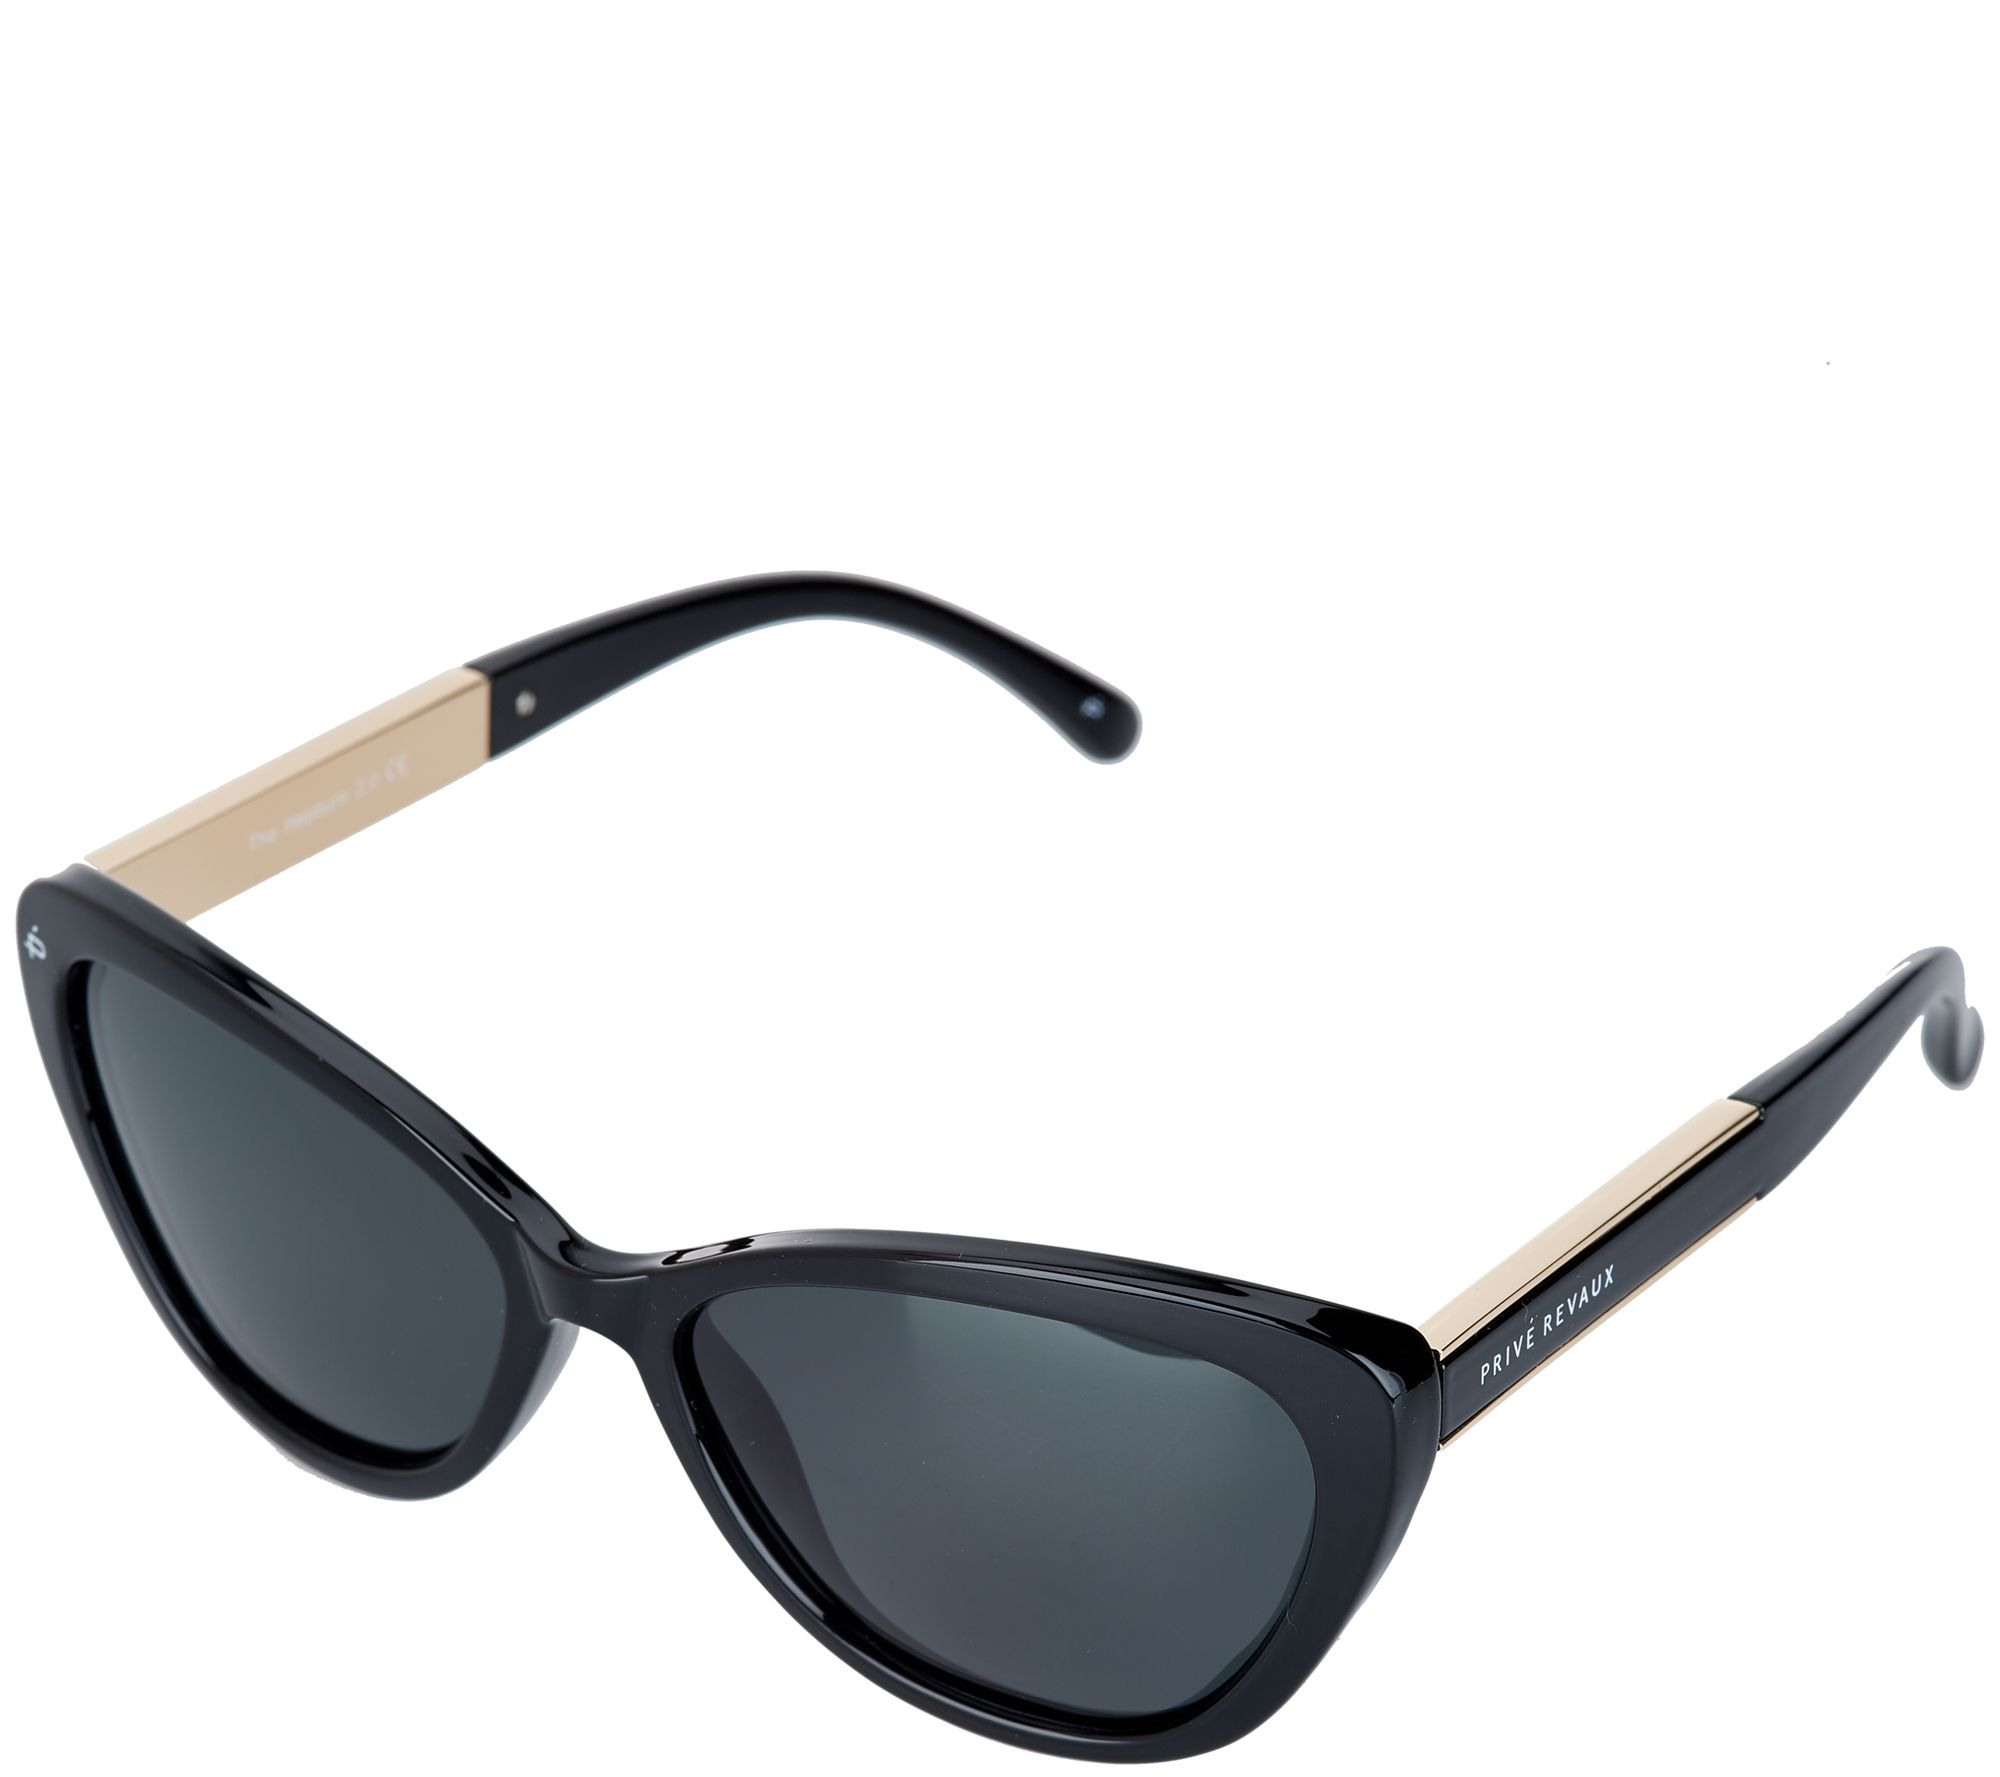 8ba6cde20a Prive Revaux The Hepburn 2.0 Cat-Eye Polarized Sunglasses - Page 1 — QVC.com